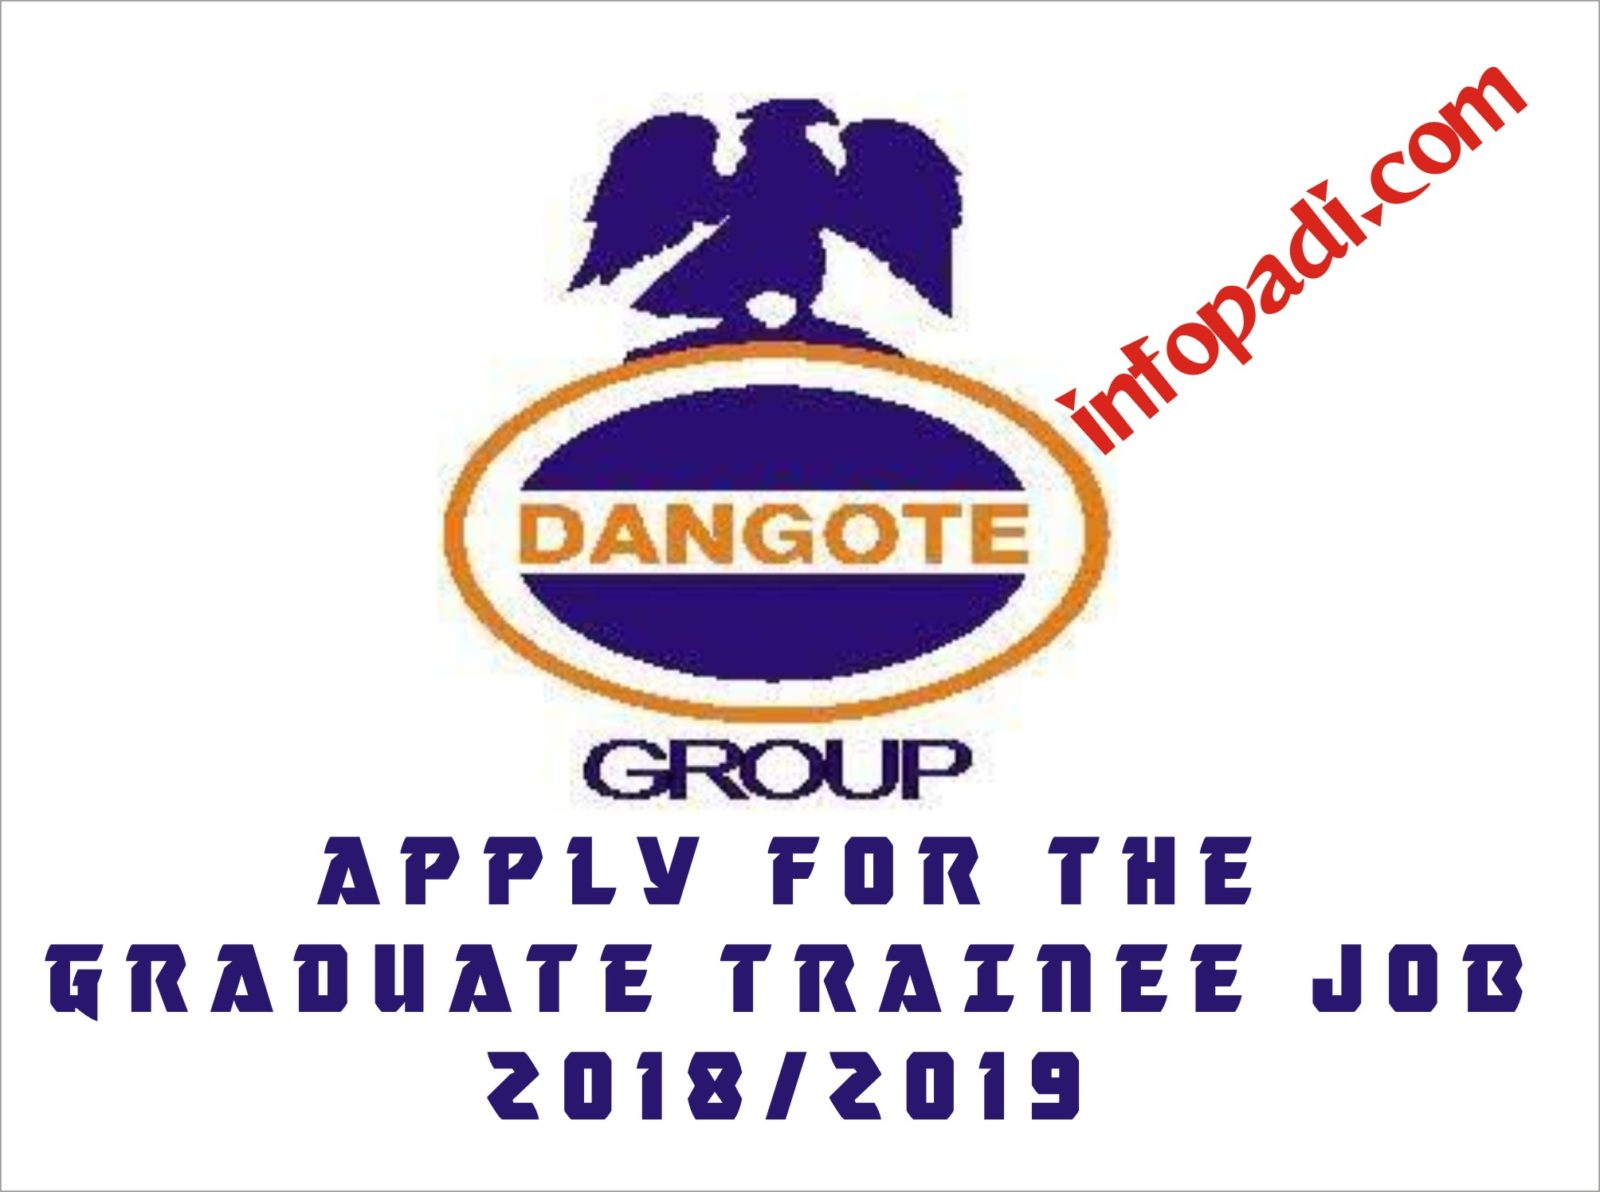 Dangote Refinery Fresh Graduate Trainee Jobs 2018- How to apply and be successful in the career